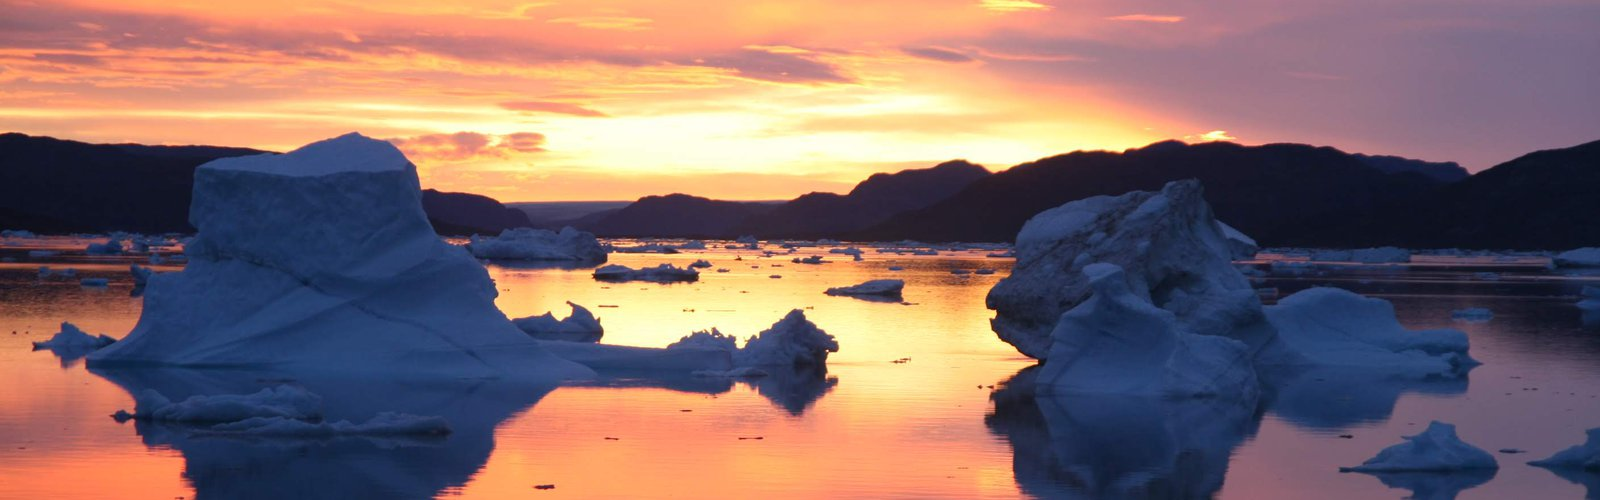 sunset_bay_of_Narsaq_Greenland